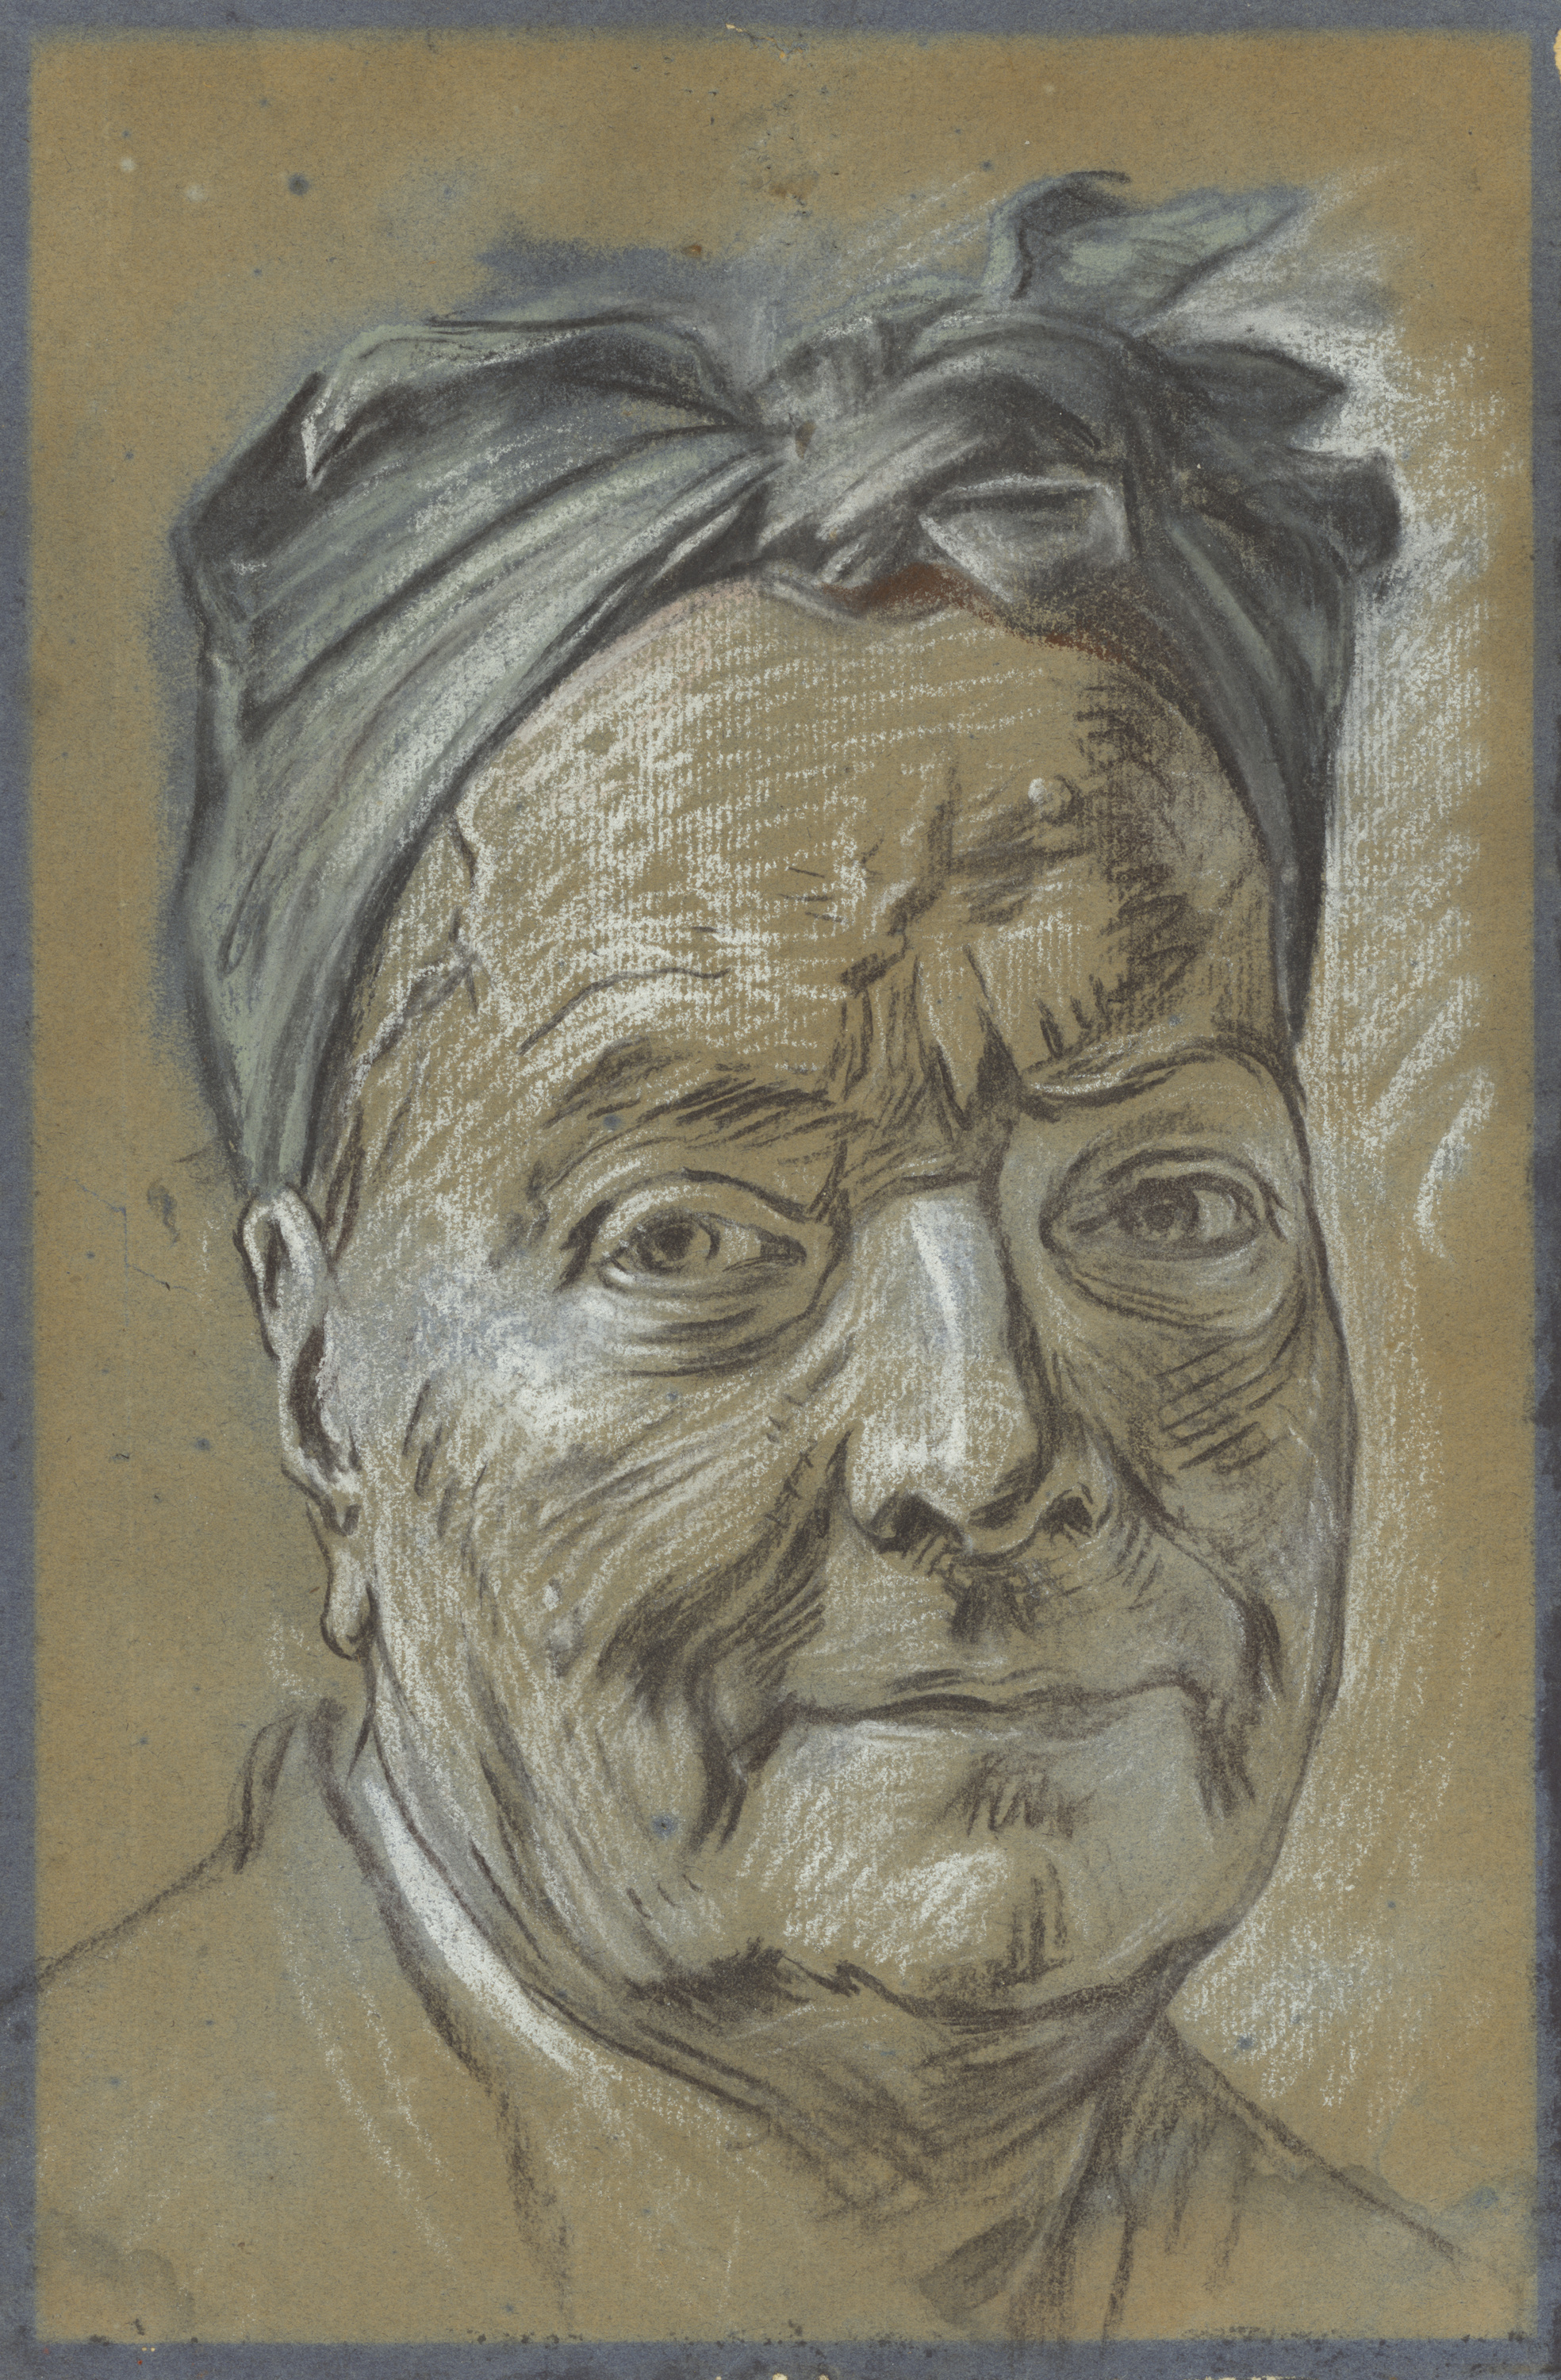 Portrait par Maurice Quentin La Tour - env. 1753 				Black and white chalk, blue and rose pastel on faded blue paper 				32.5 × 21.4 cm (12 13/16 × 8 7/16 in.), 2002.50 				The J. Paul Getty Museum, Los Angeles